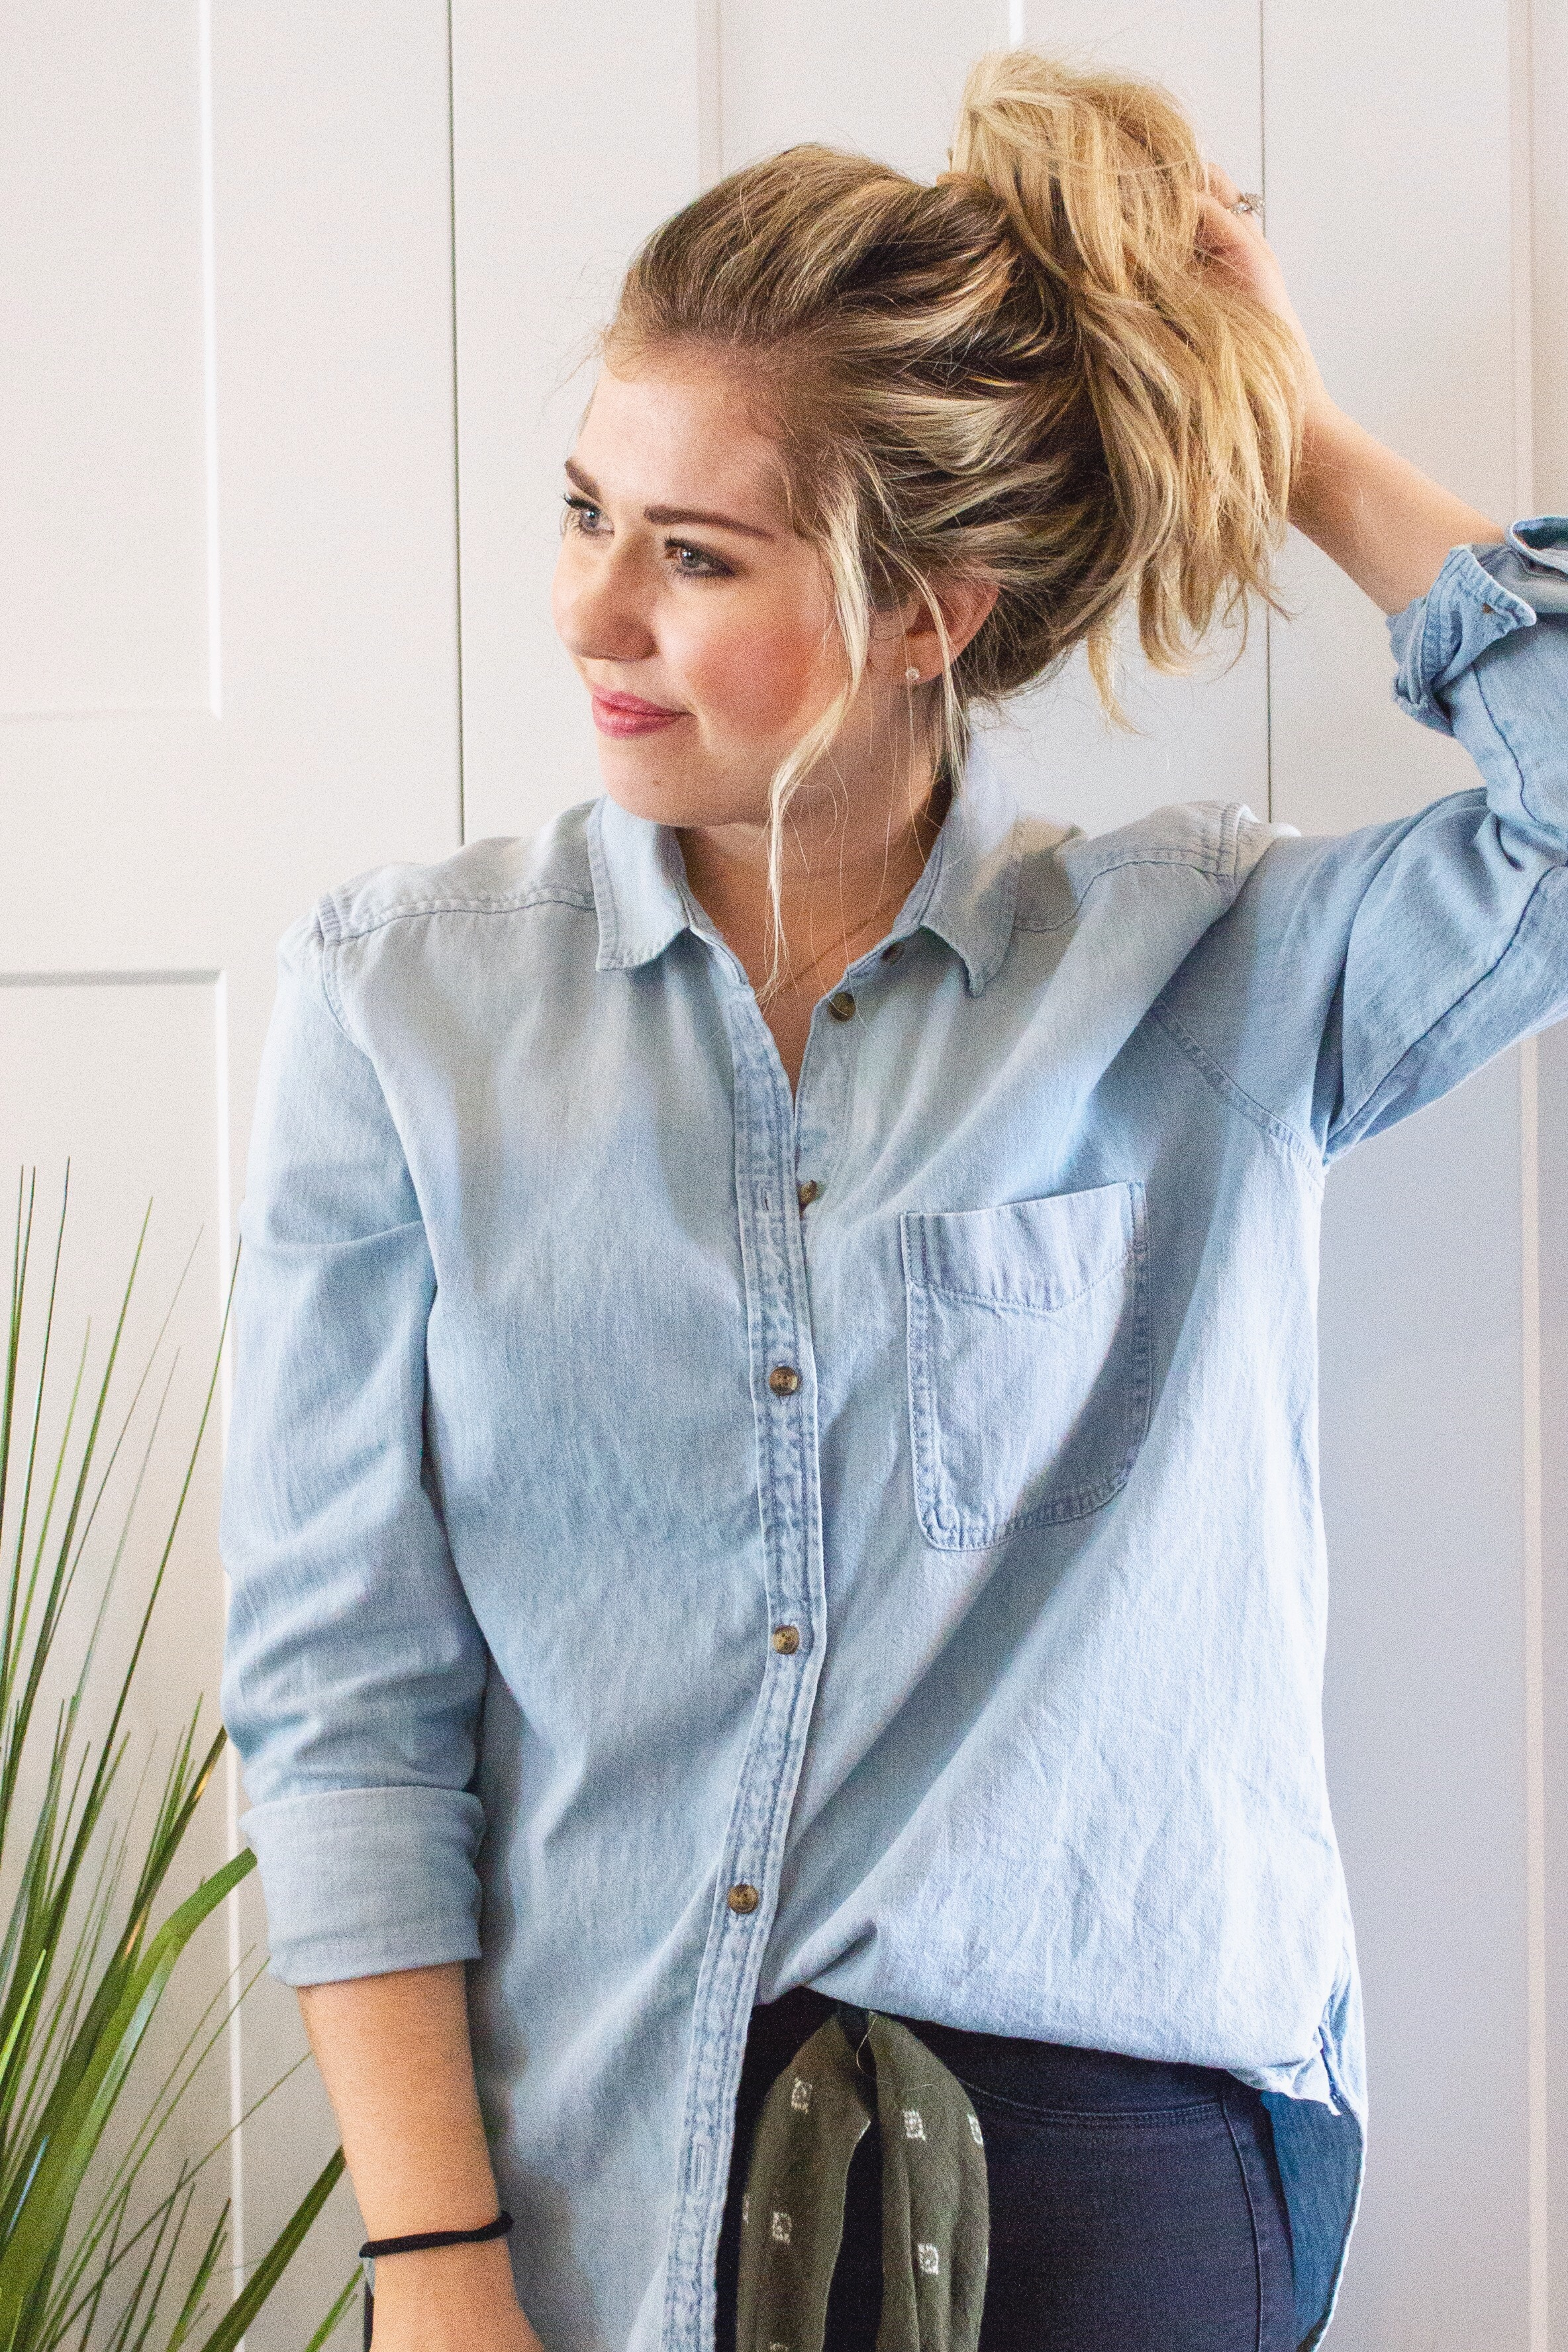 STEP 1: Secure in High Ponytail - Secure the hair into a high ponytail with your first hair tie, making sure to place it where you want your topknot to end up.